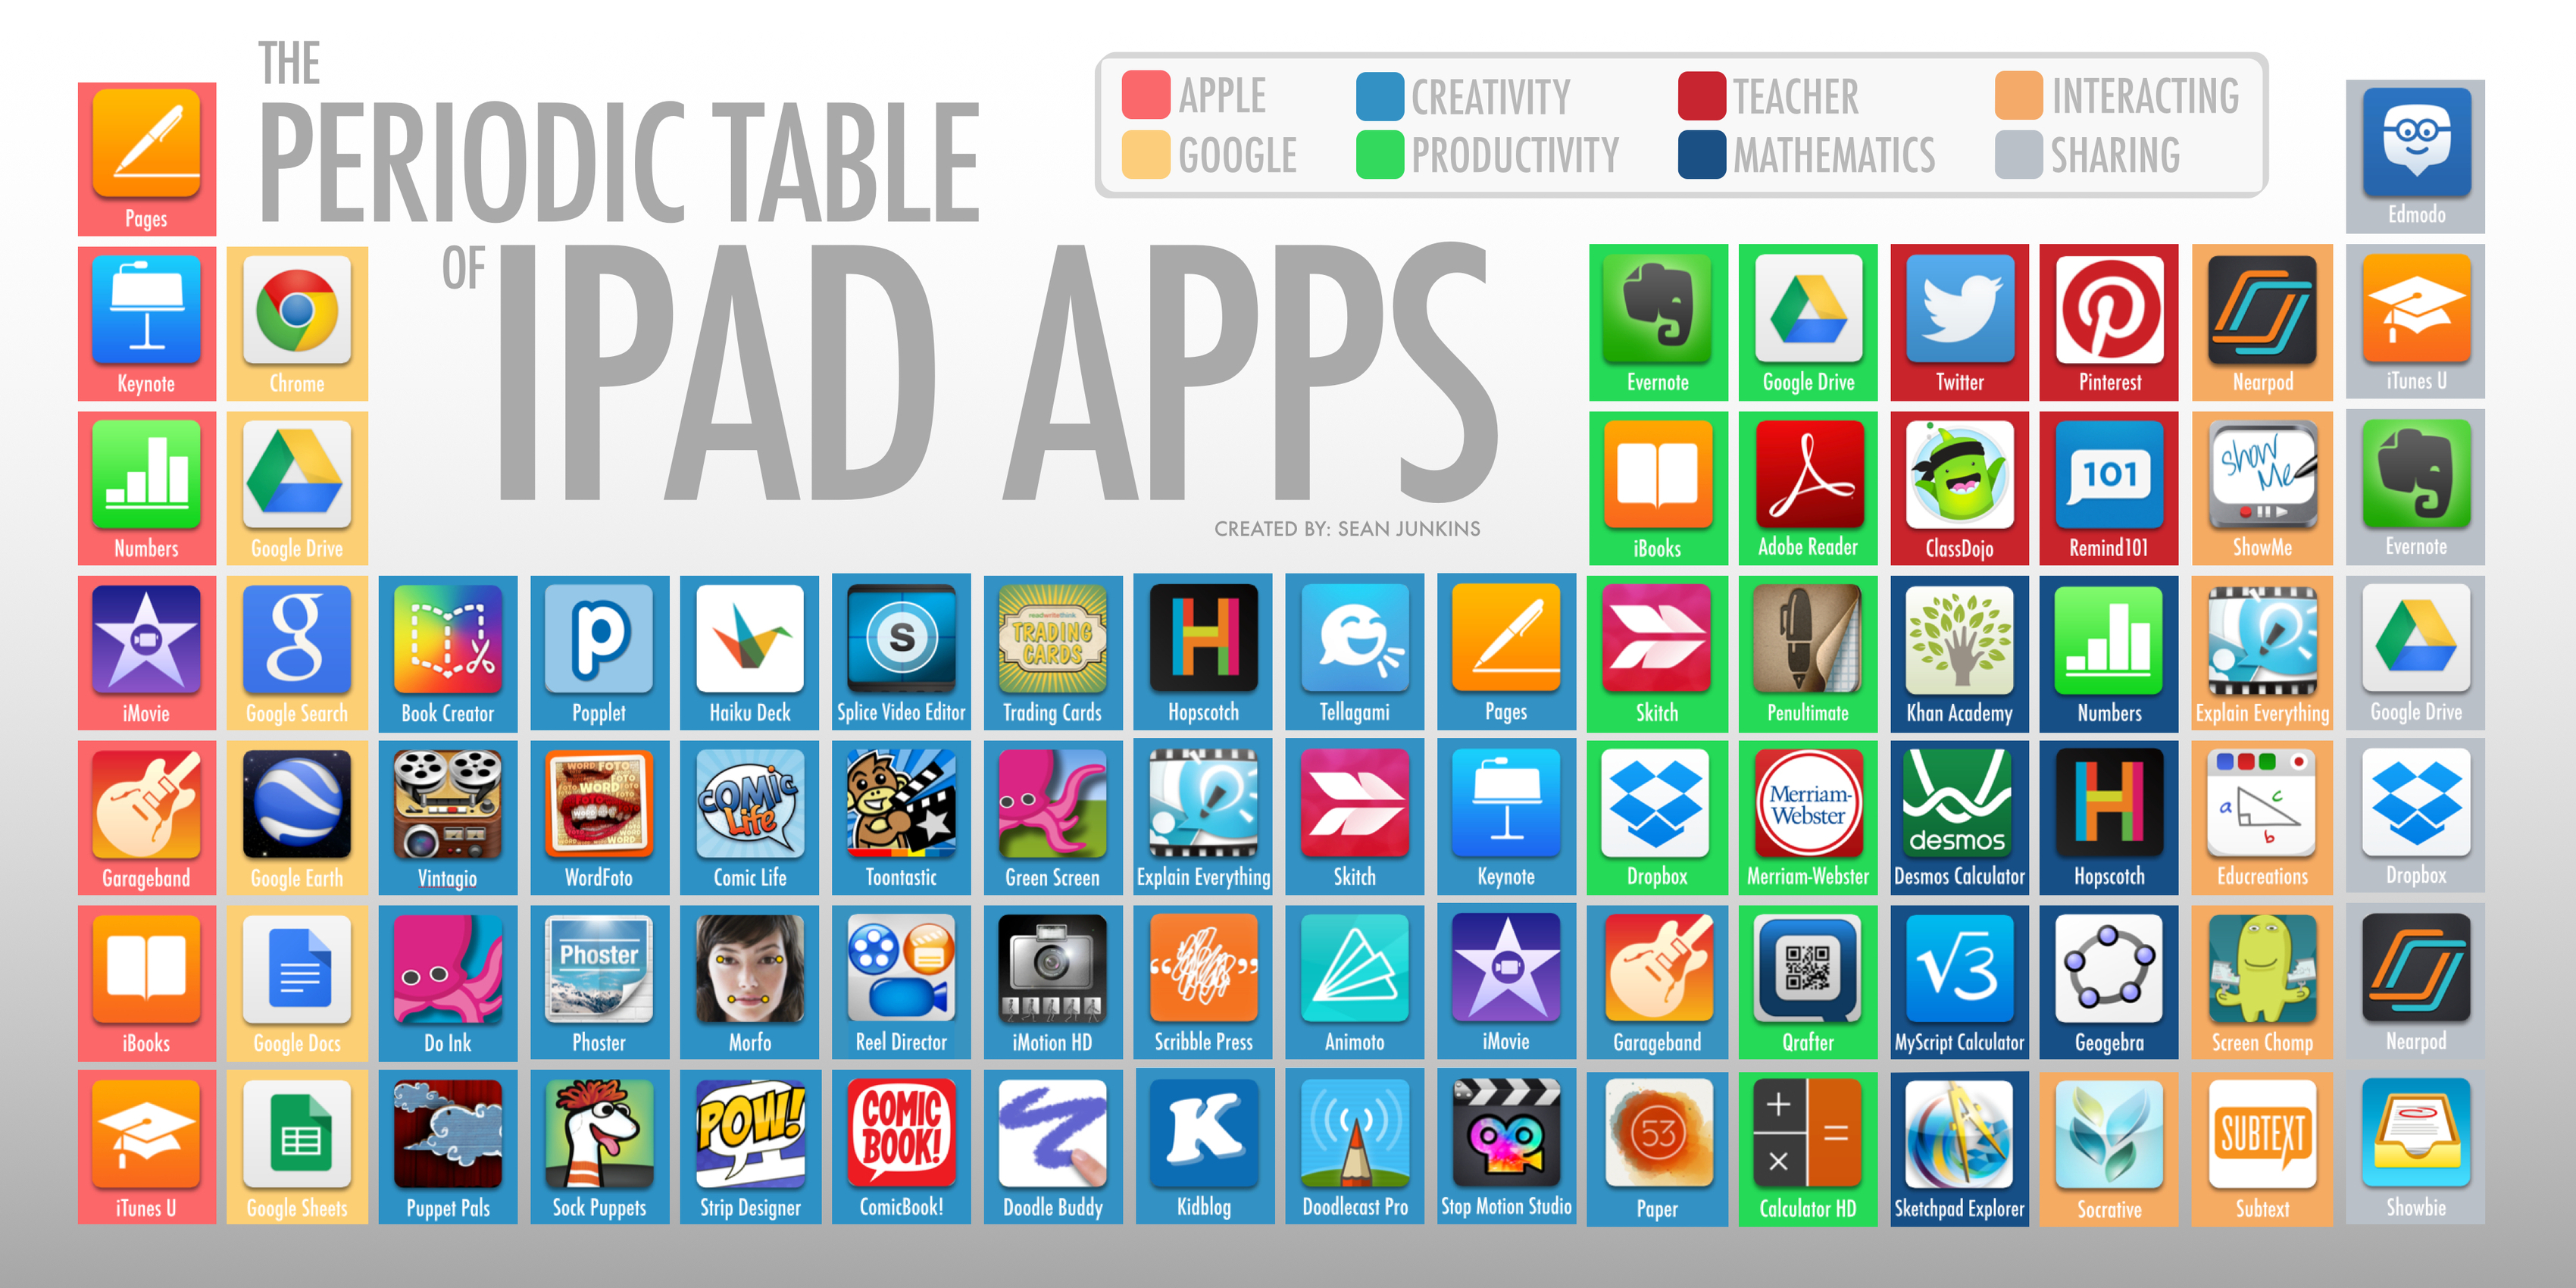 The periodic table of ipad apps ict for austr the periodic table of ipad apps ict for austr urtaz Choice Image